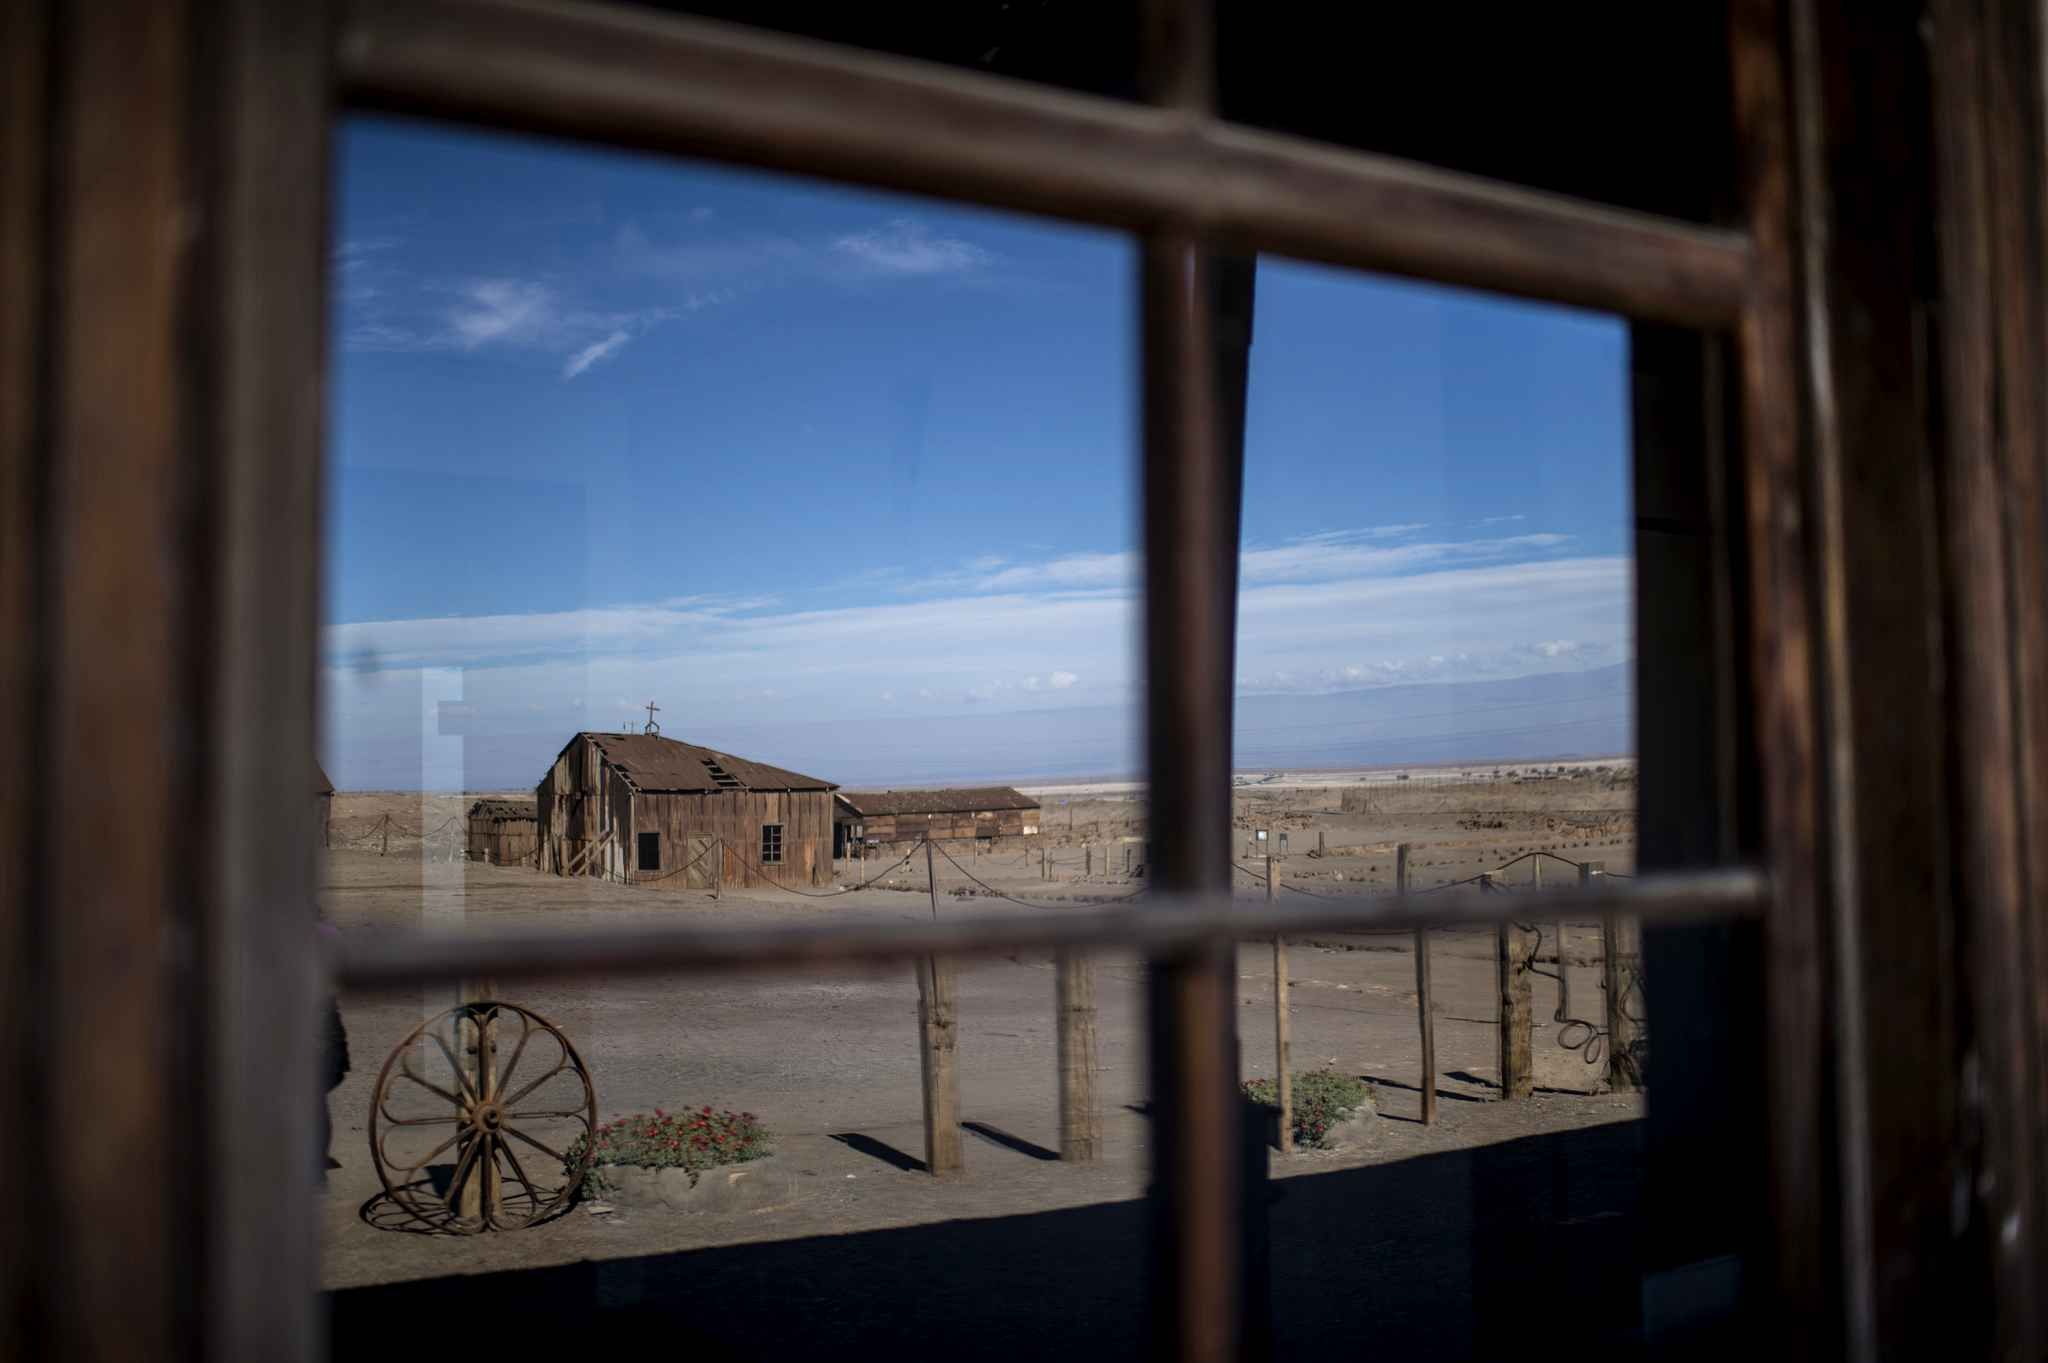 Welcome to the Humberstone saltpeter works and Santa Laura. Located in northern Chile and abandoned since 1960, the site is a World Heritage Site by Unesco. The result is a daunting ghost town in the desert.